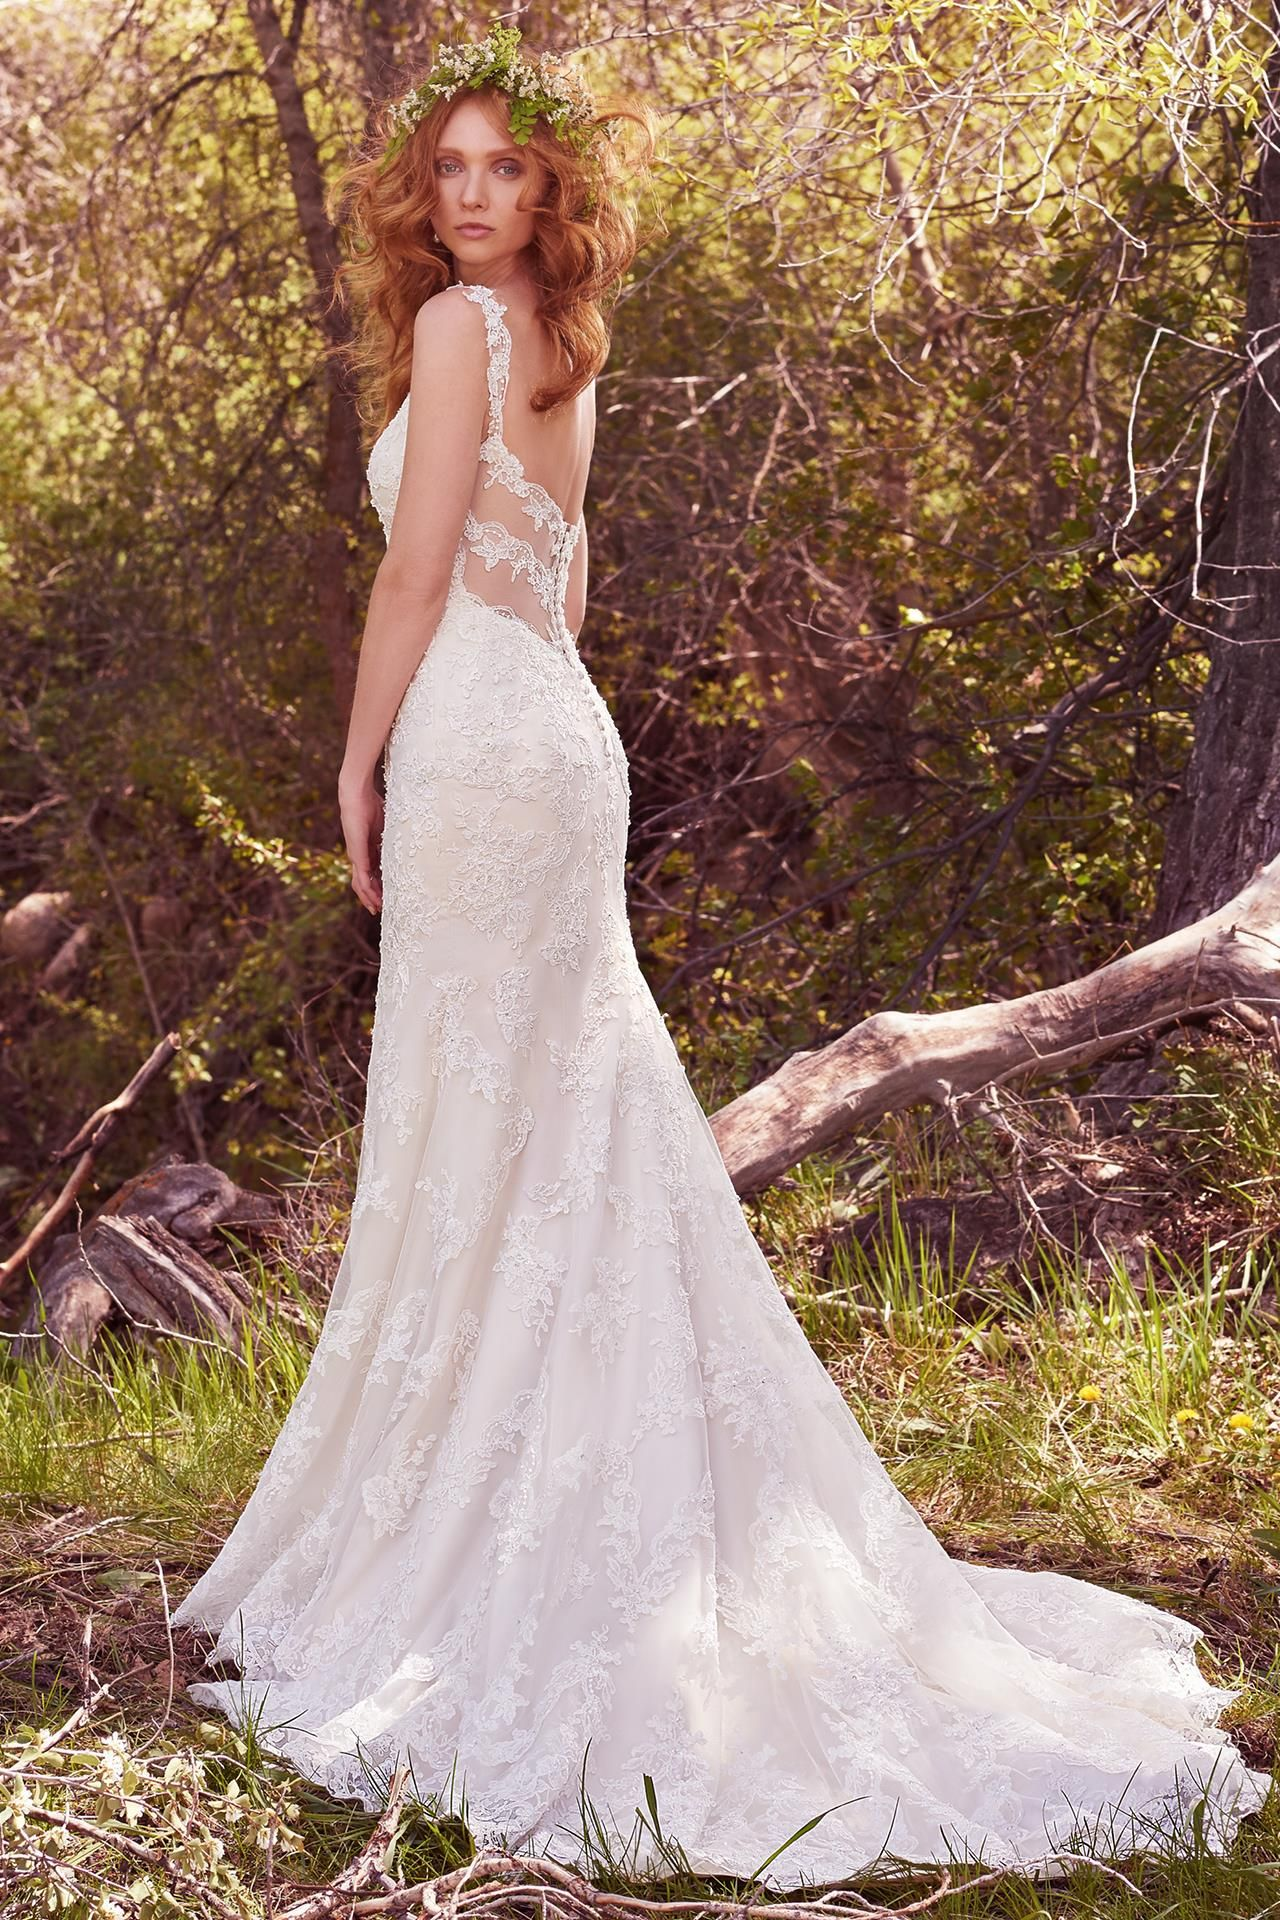 Venita Wedding Dress from Maggie Sottero | hitched.co.uk | Wedding ...